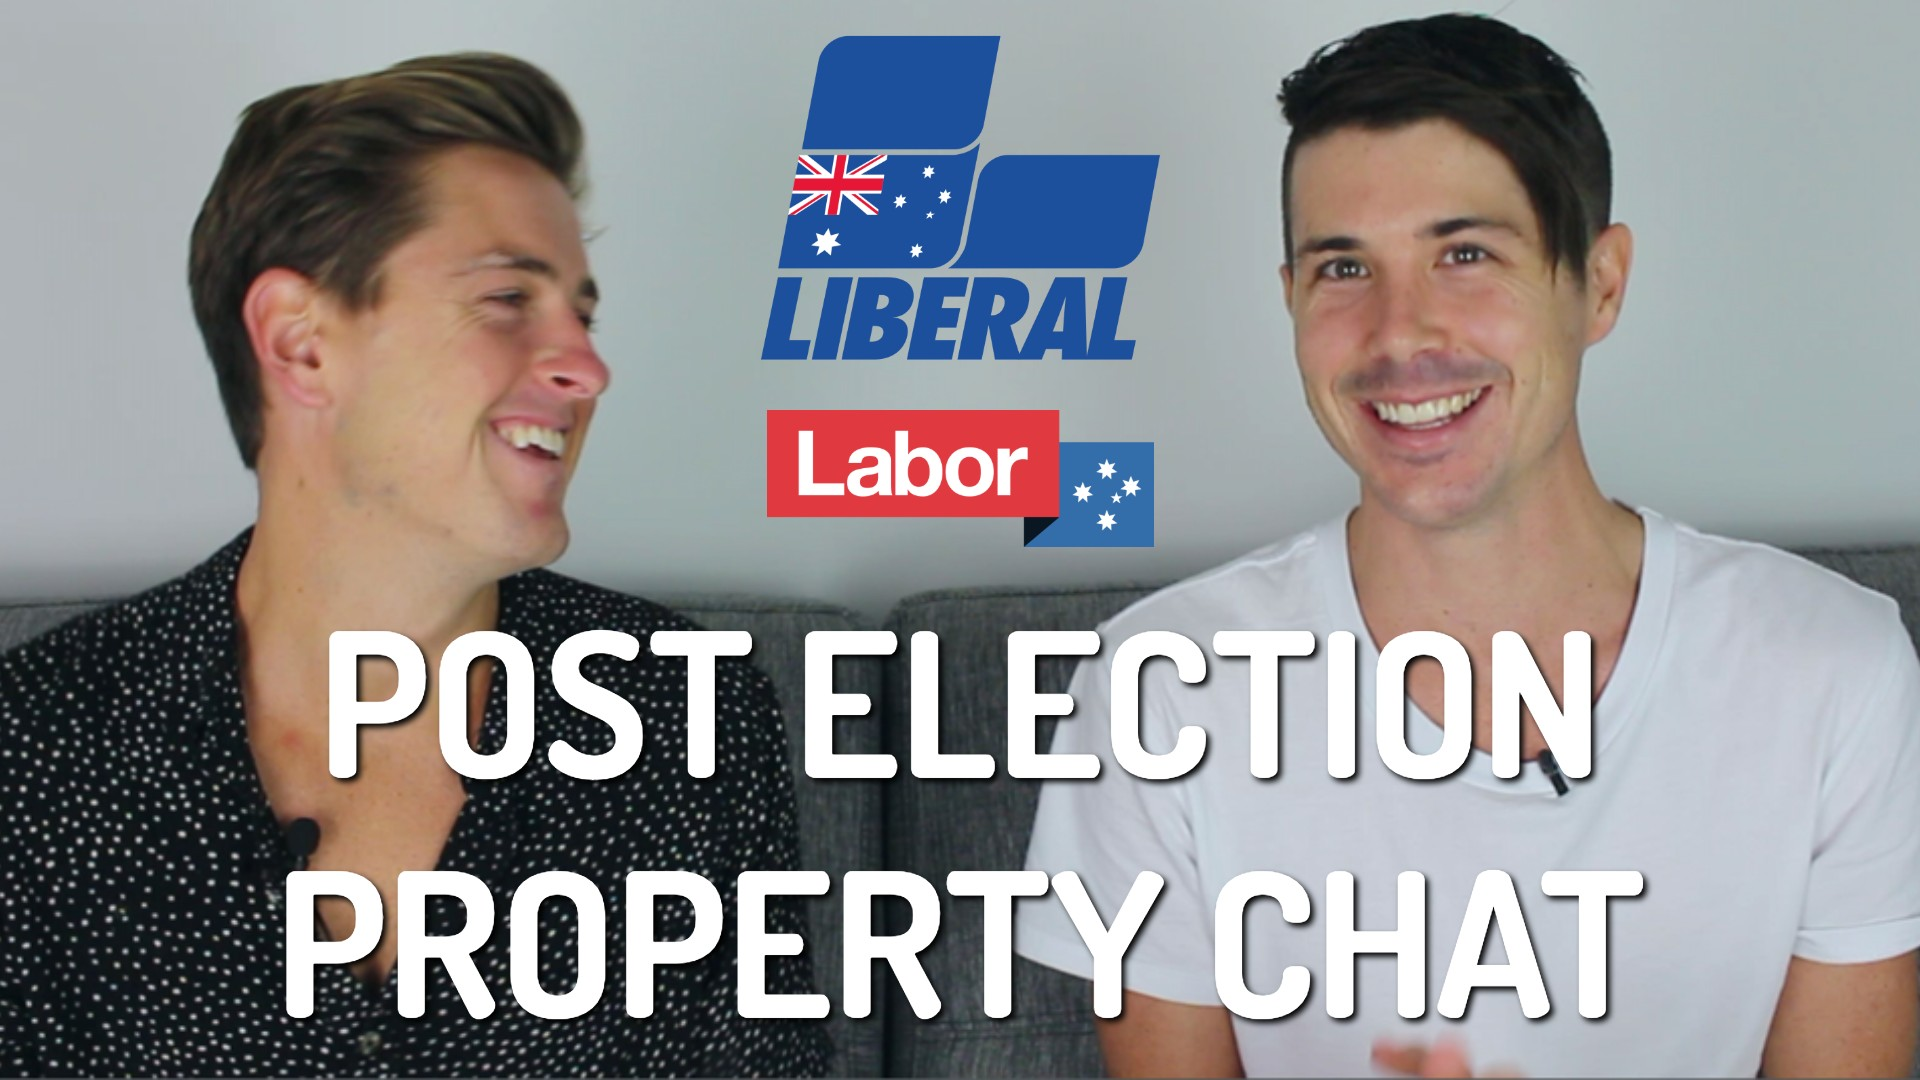 Post Election Property Chat: How Will This Affect The Market?